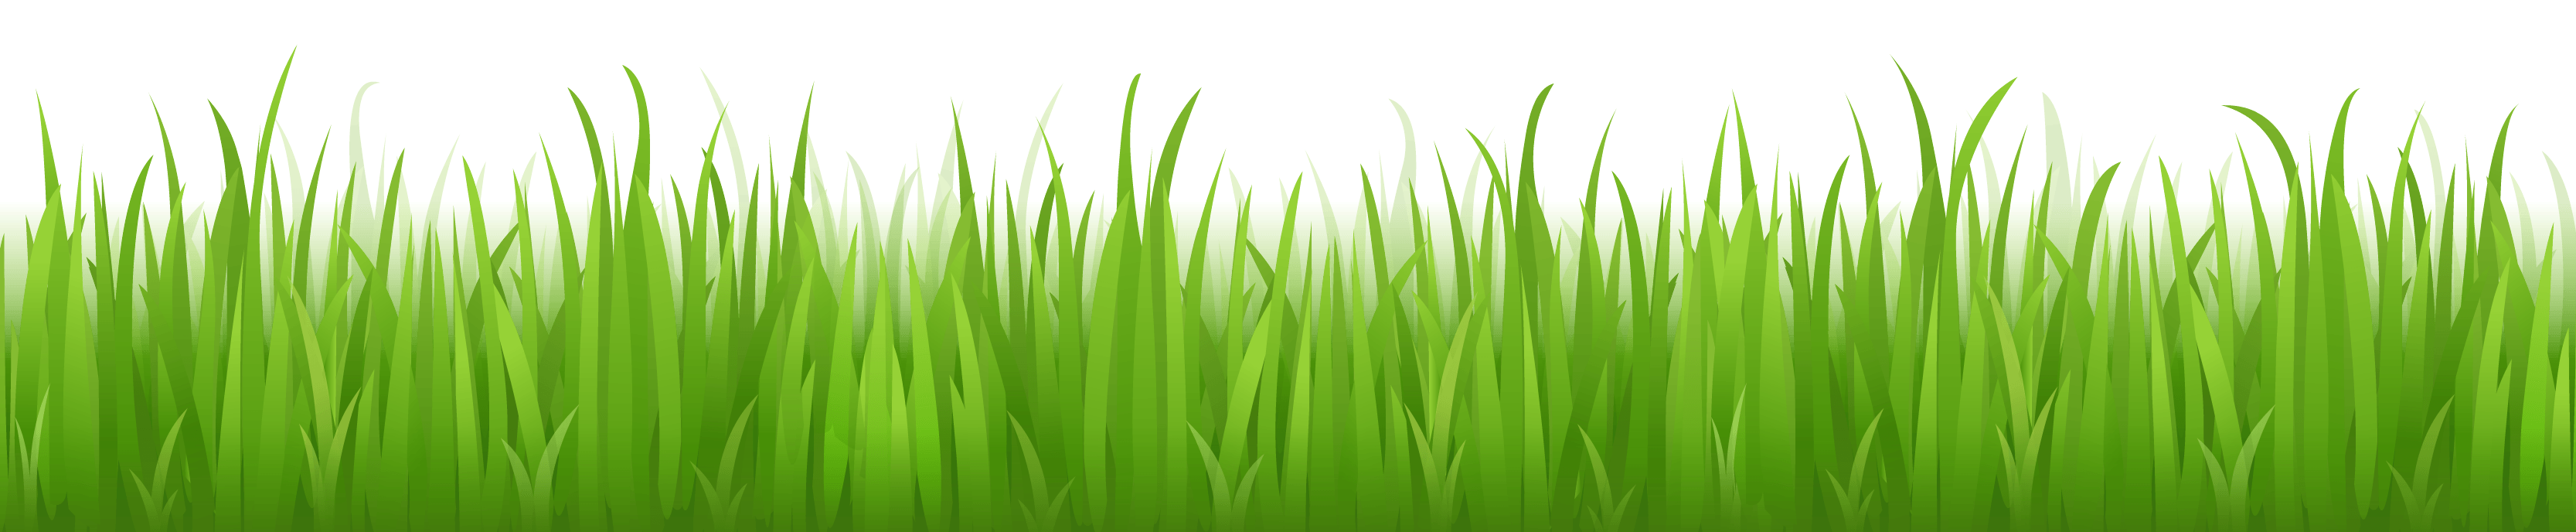 Grass Picture Hq | Collection 9+ Wallpapers